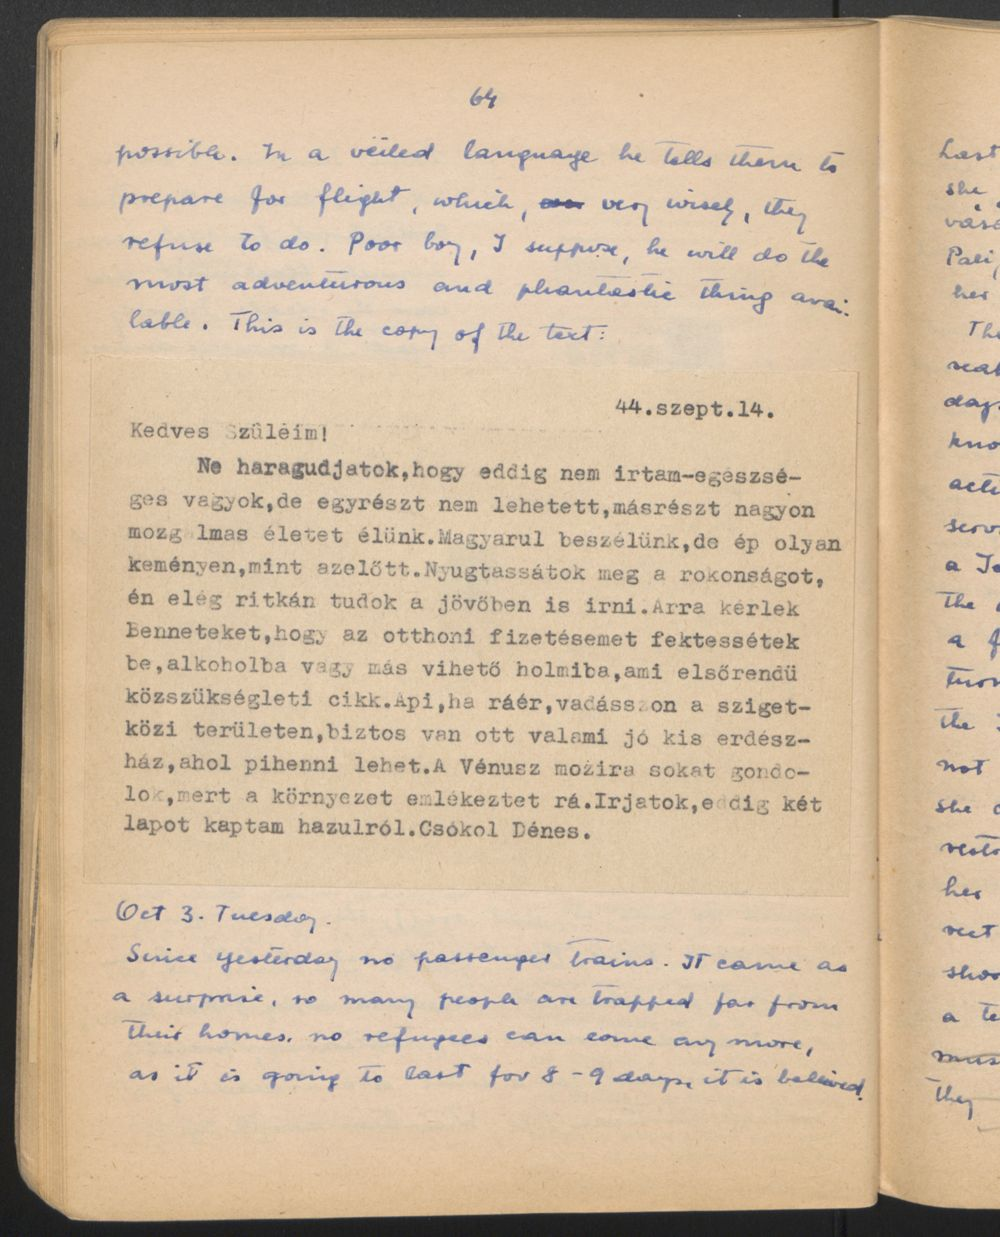 These pages from the diary of Dr. Maria Madi describe her internal struggle with her response to the persecution of a Jewish colleague at a clinic in Budapest, Hungary.